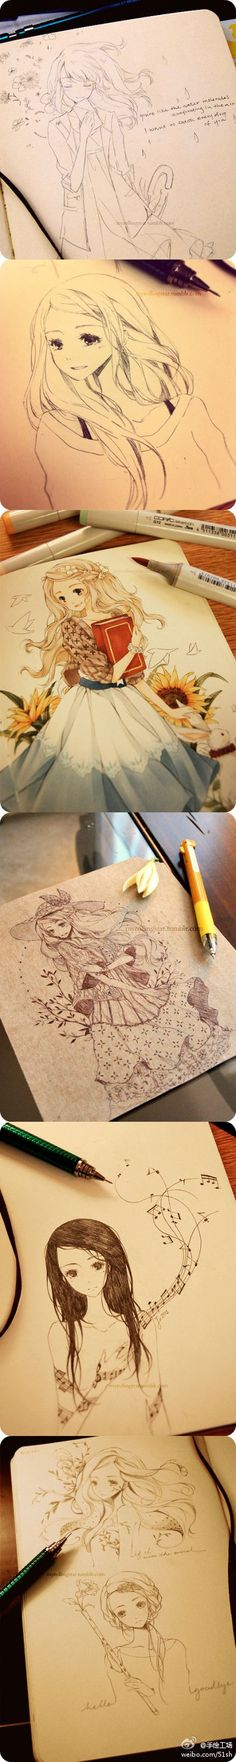 ✮ ANIME ART ✮ anime girls. . .drawing. . .doodle. . .work in progress. . .pen. . .marker. . .cute. . .kawaii